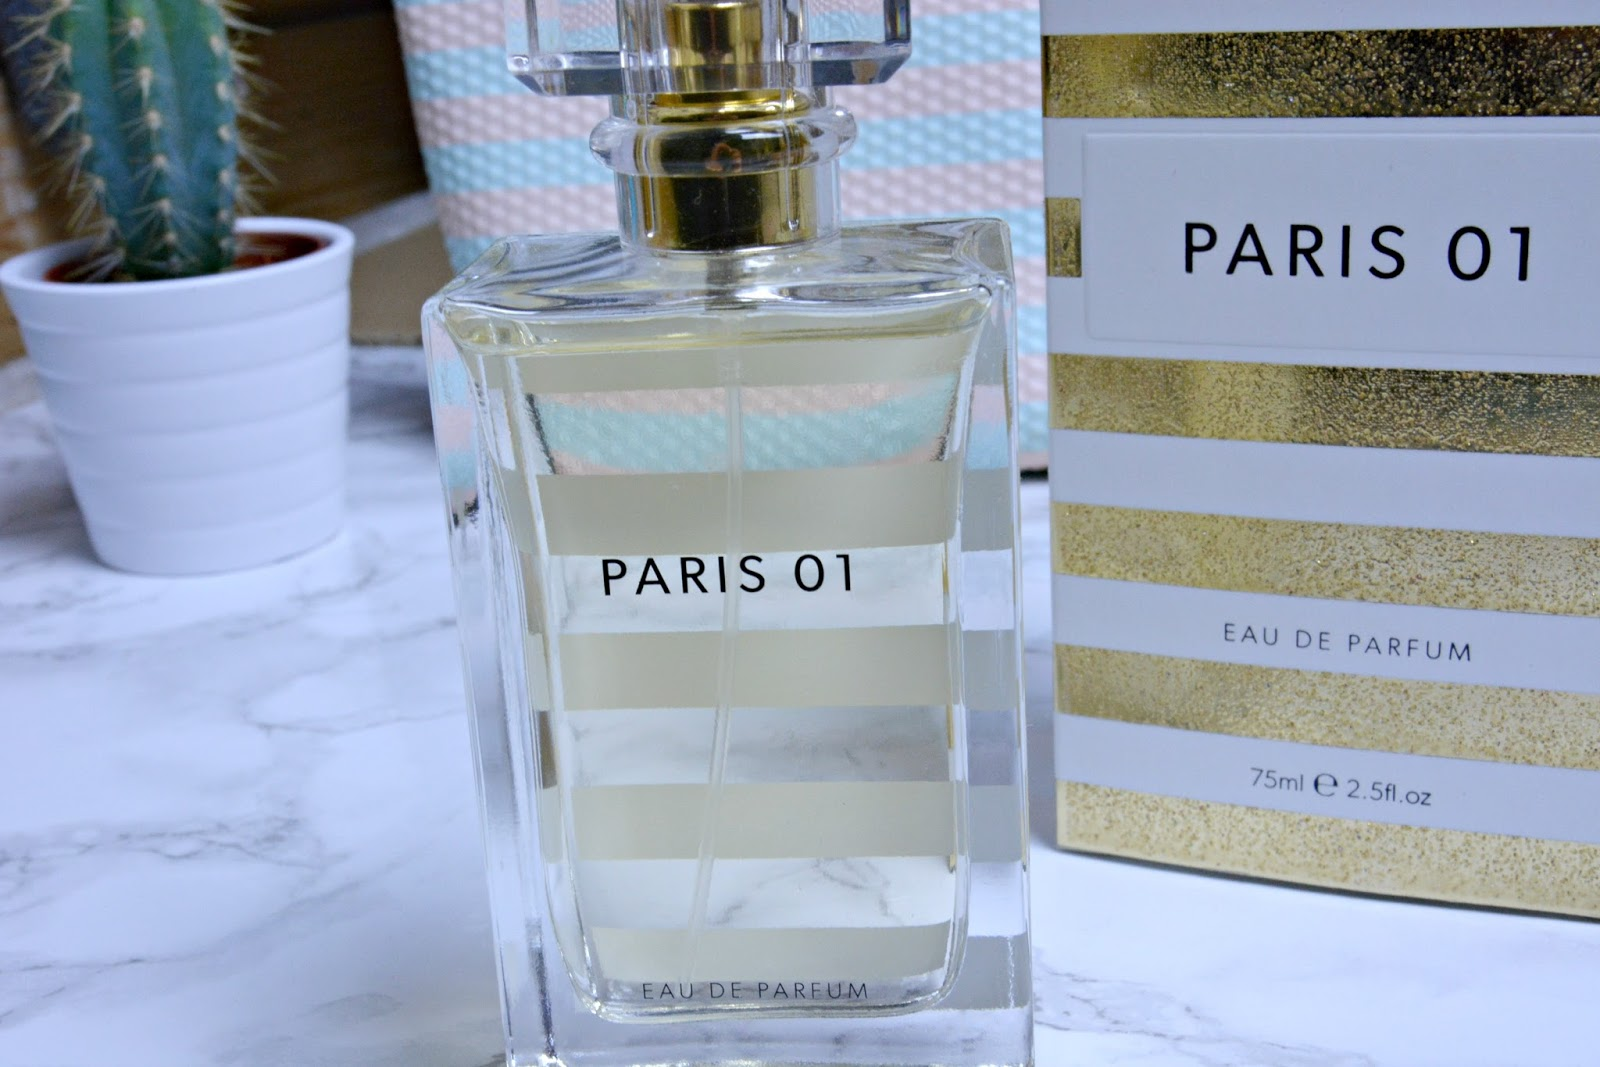 paris, beauty, perfume, fragrance, eau de parfum, primark, shopping